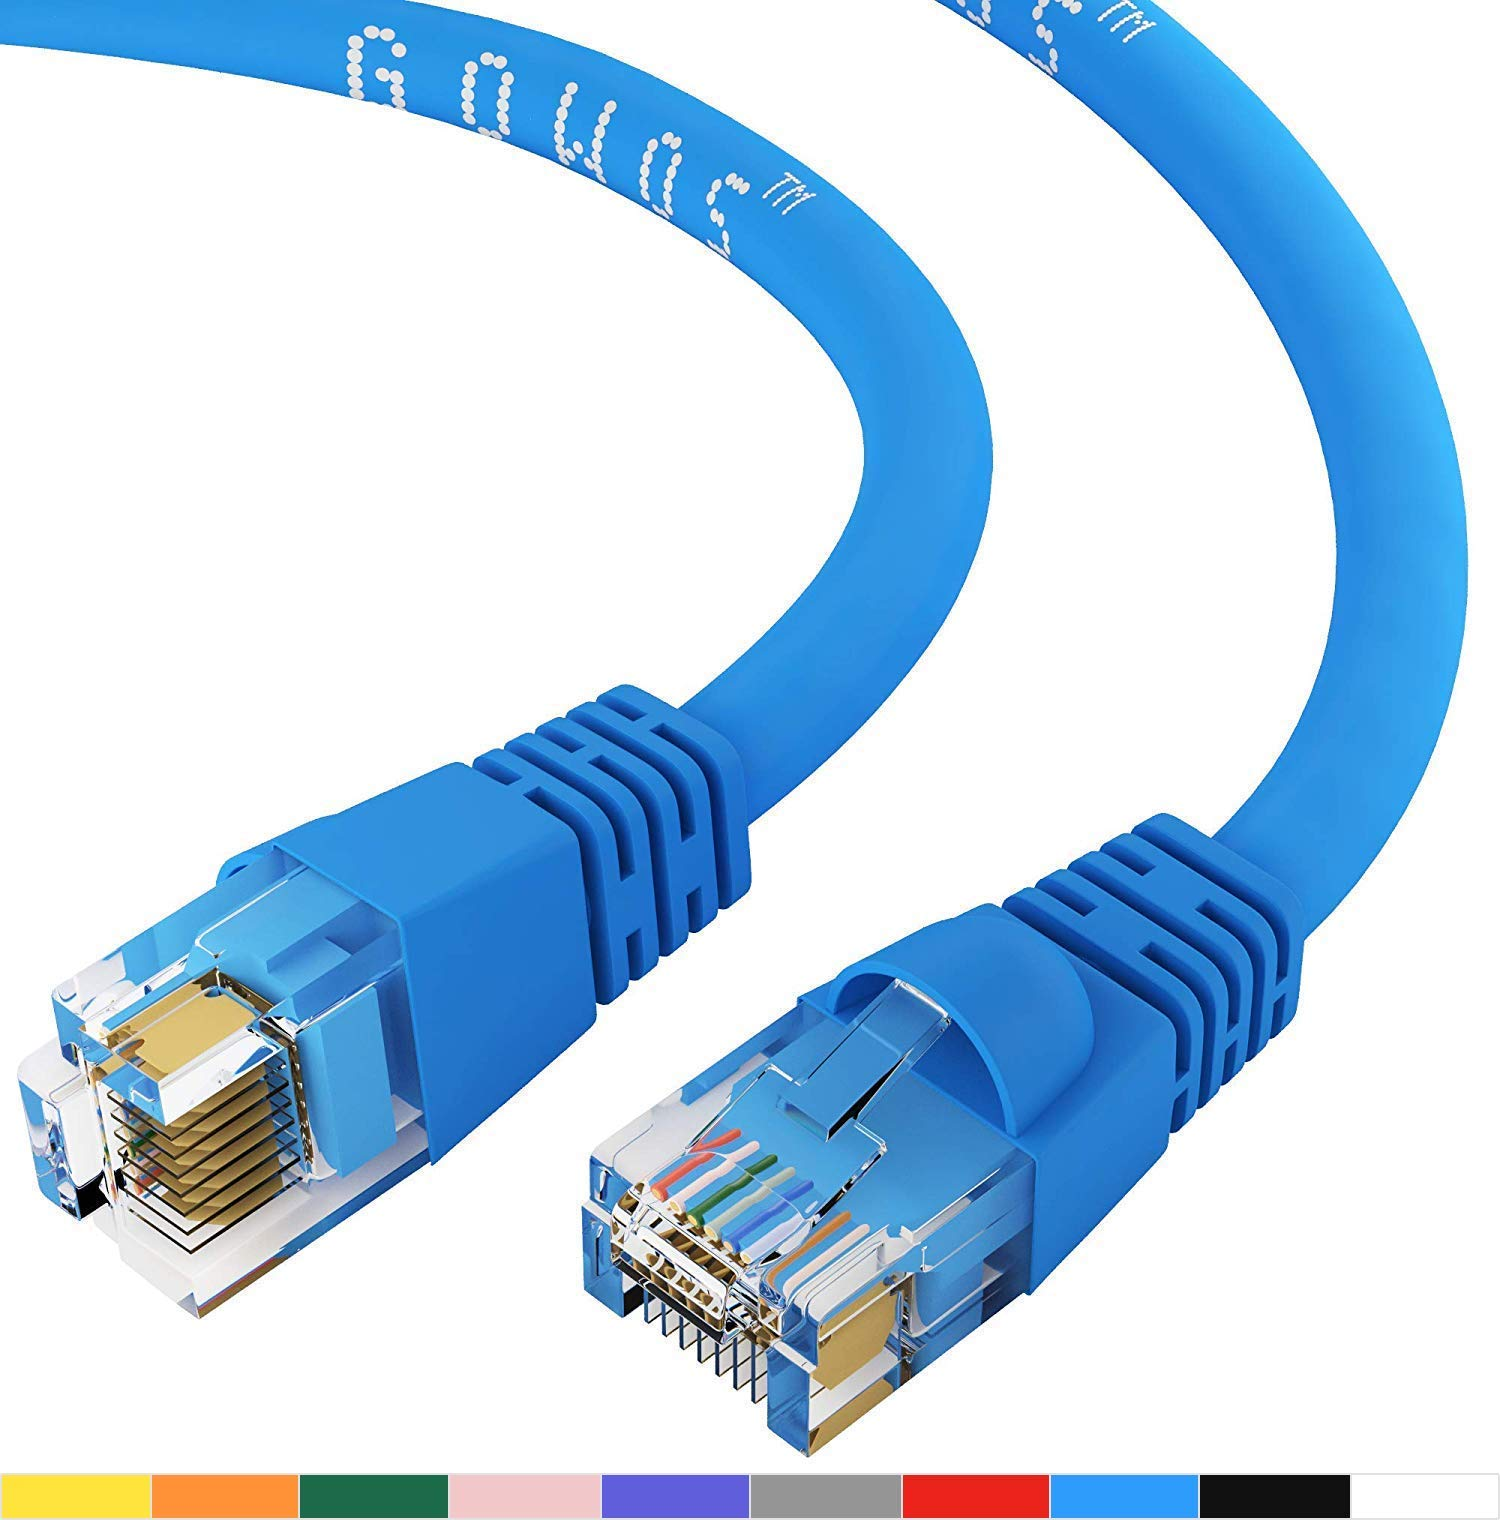 Cat5e Ethernet Cable Available in 28 Lengths and 10 Colors Computer Network Cable with Snagless Connector 5 Feet - Red GOWOS 100-Pack RJ45 10Gbps High Speed LAN Internet Patch Cord UTP